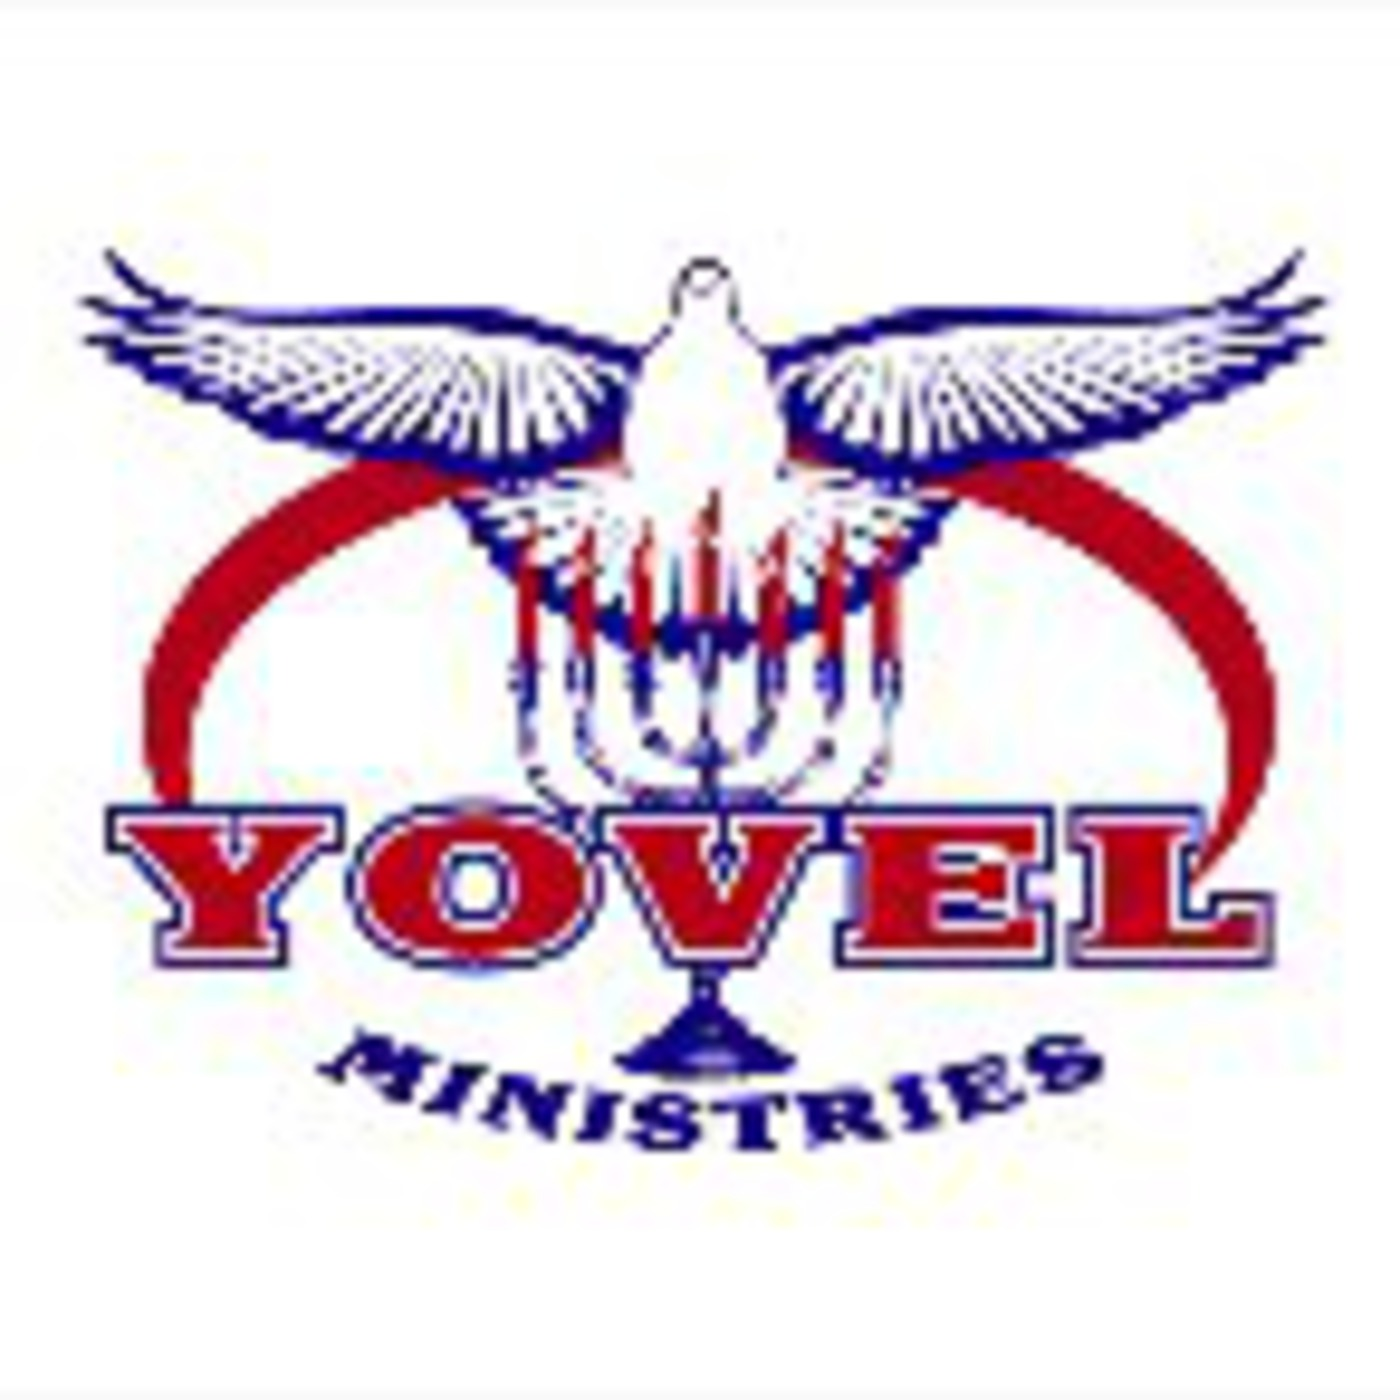 Yovel Ministries